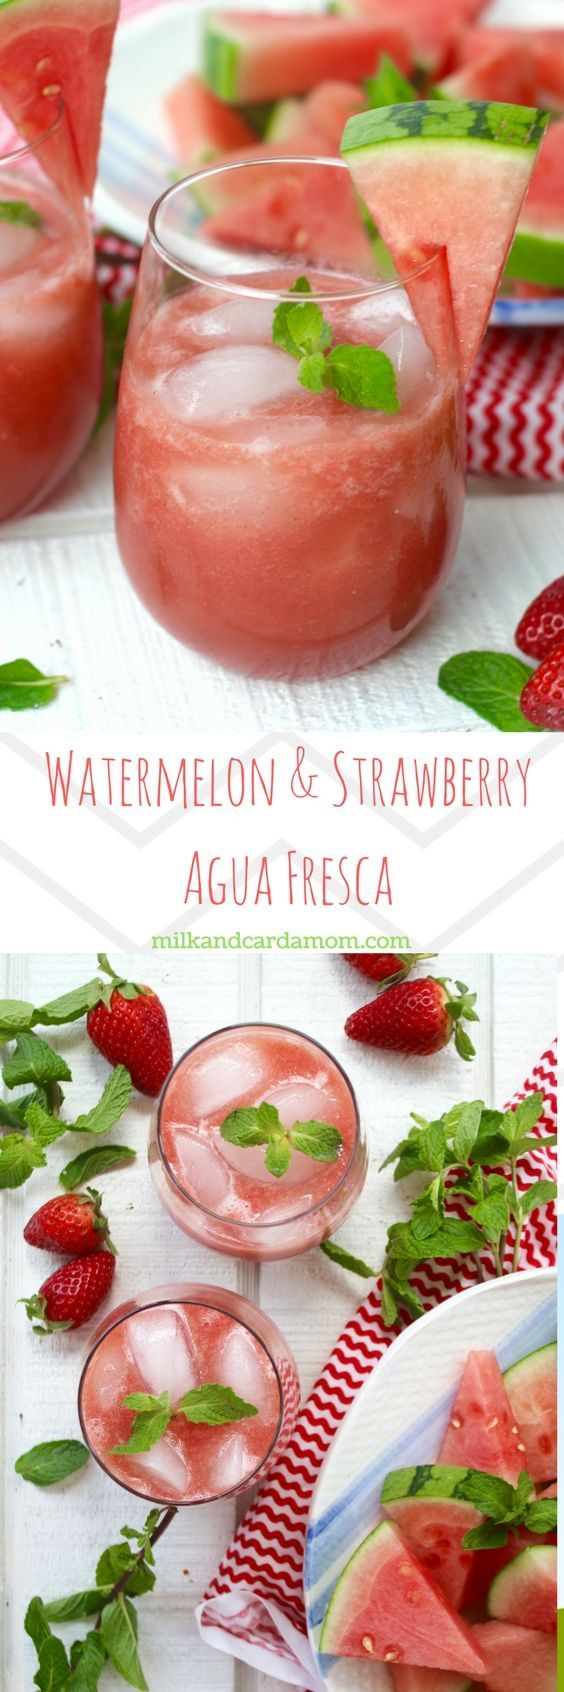 Watermelon & Strawberry Agua Fresca